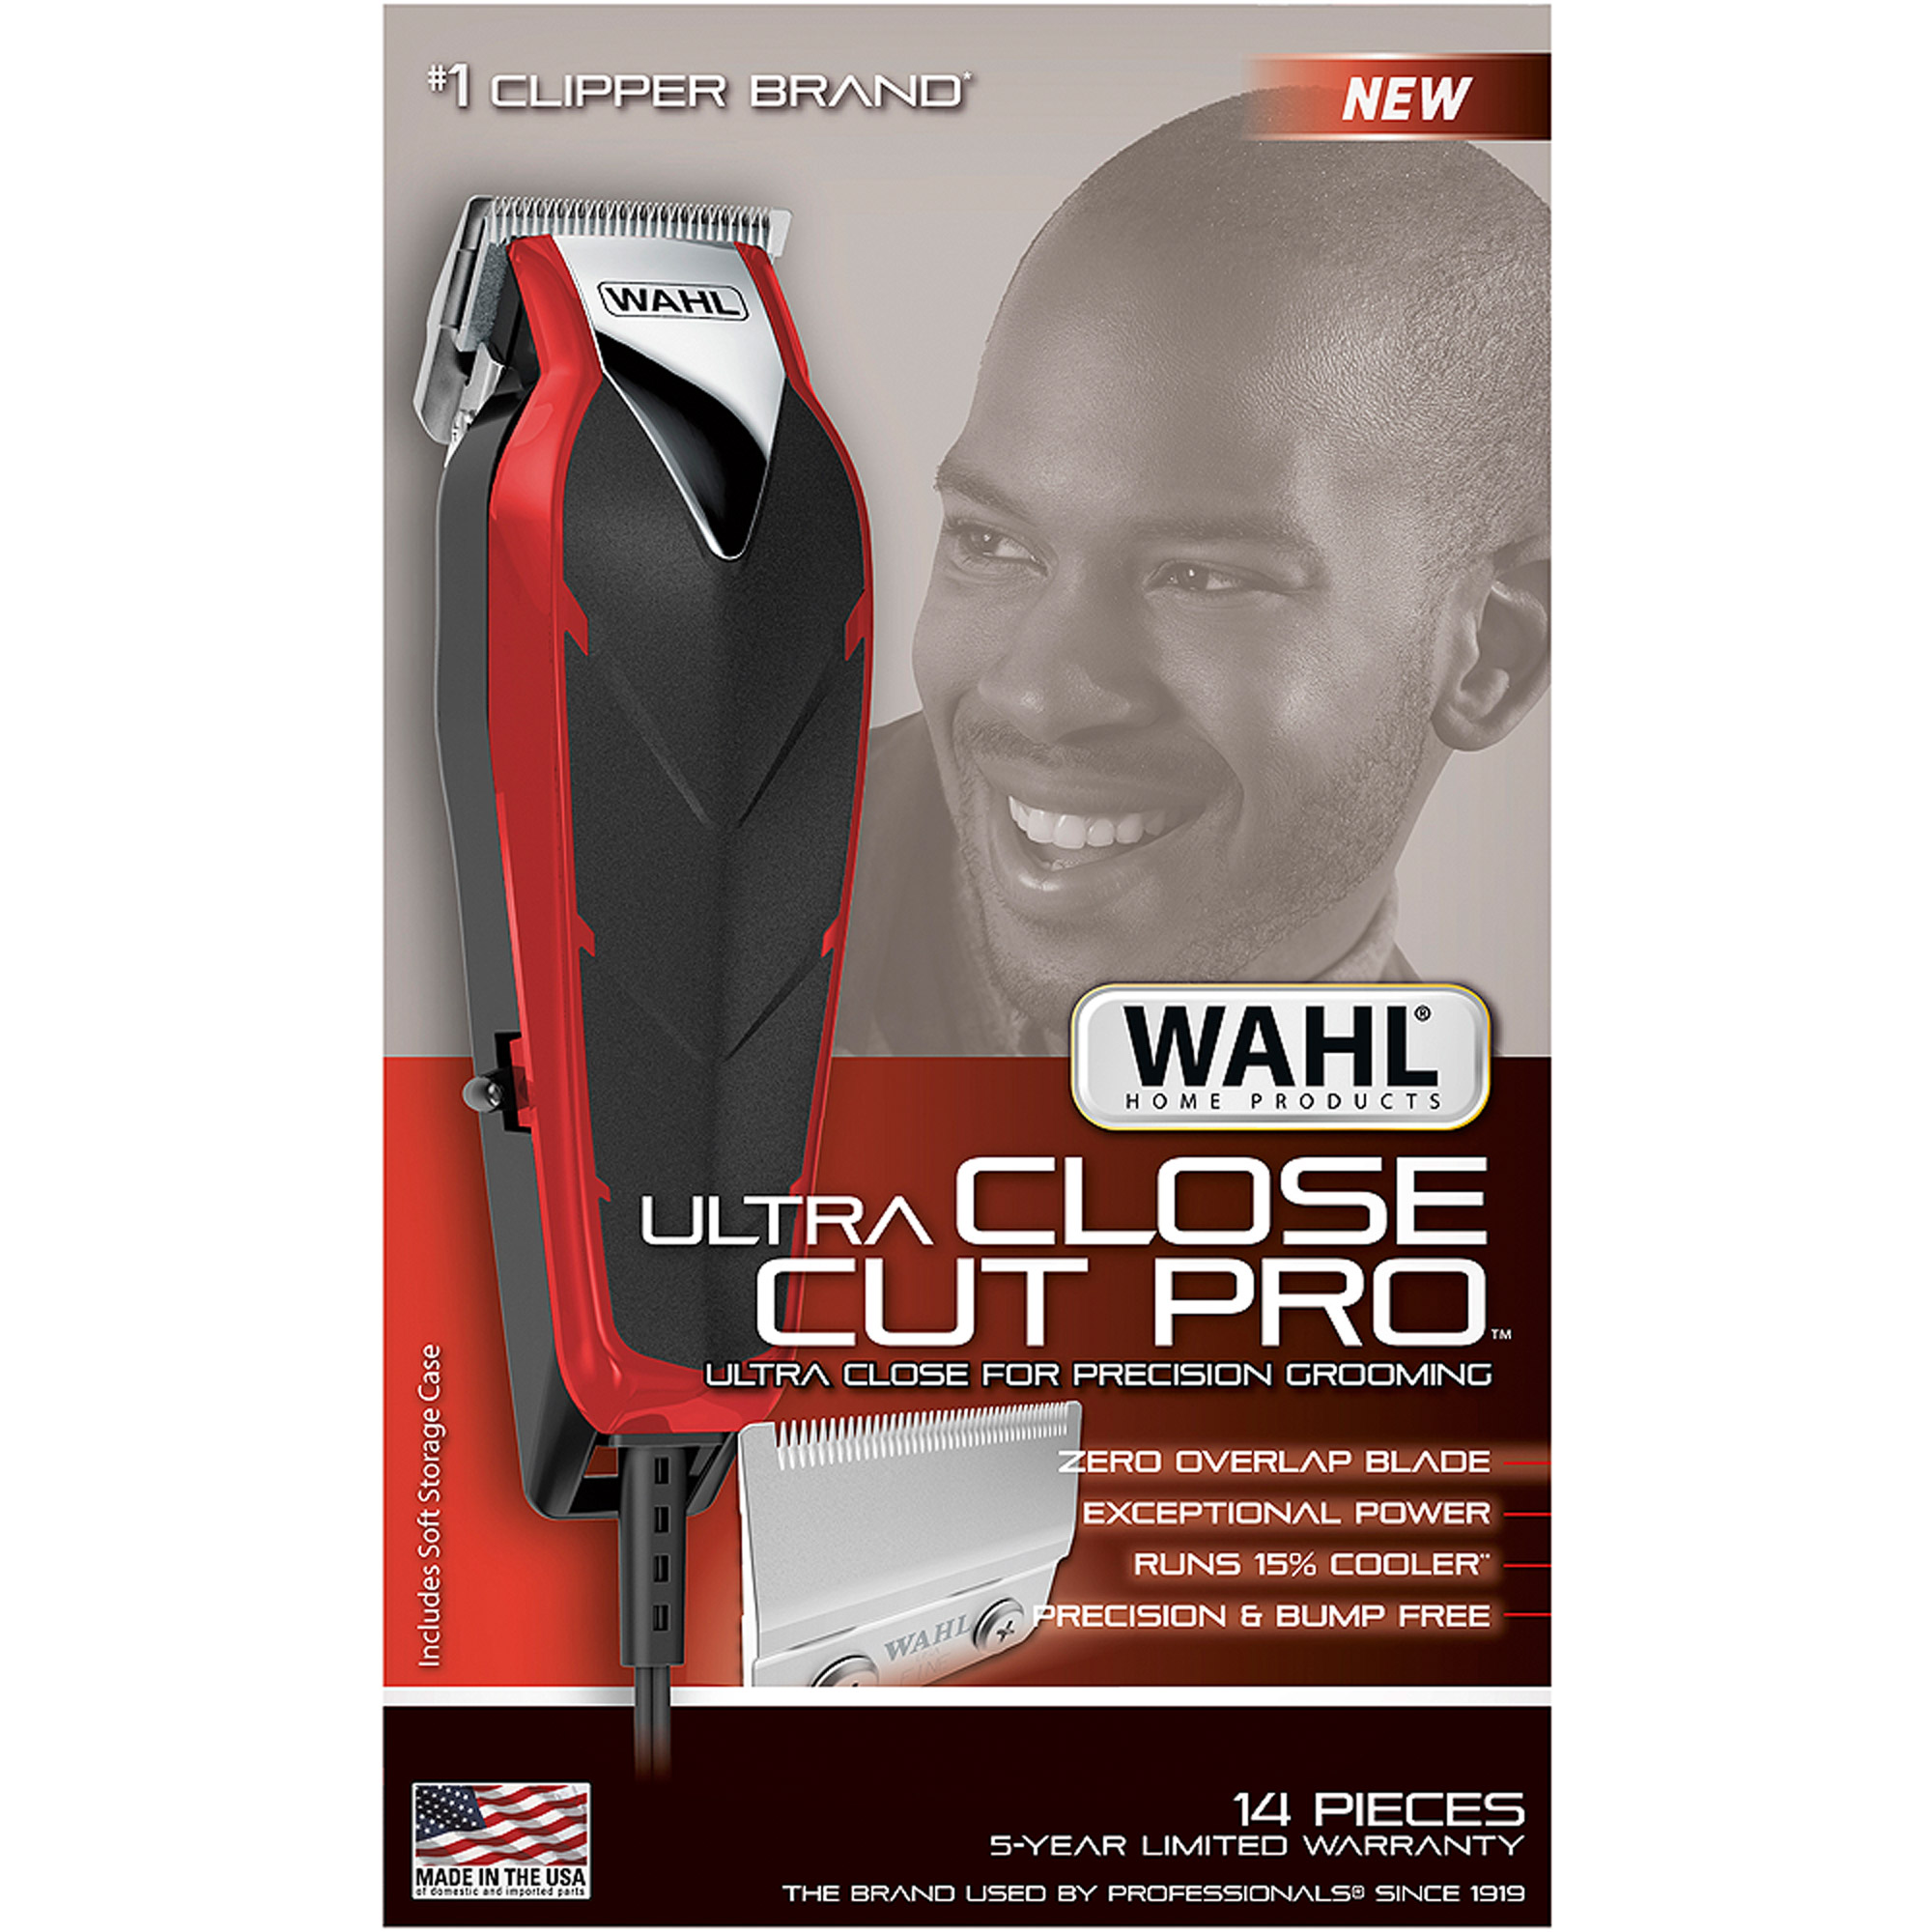 Wahl Ultra Close Cut Pro Powered Corded Hair Clipper - 6 Guide Comb[s] - Ac Supply (79111-1301)